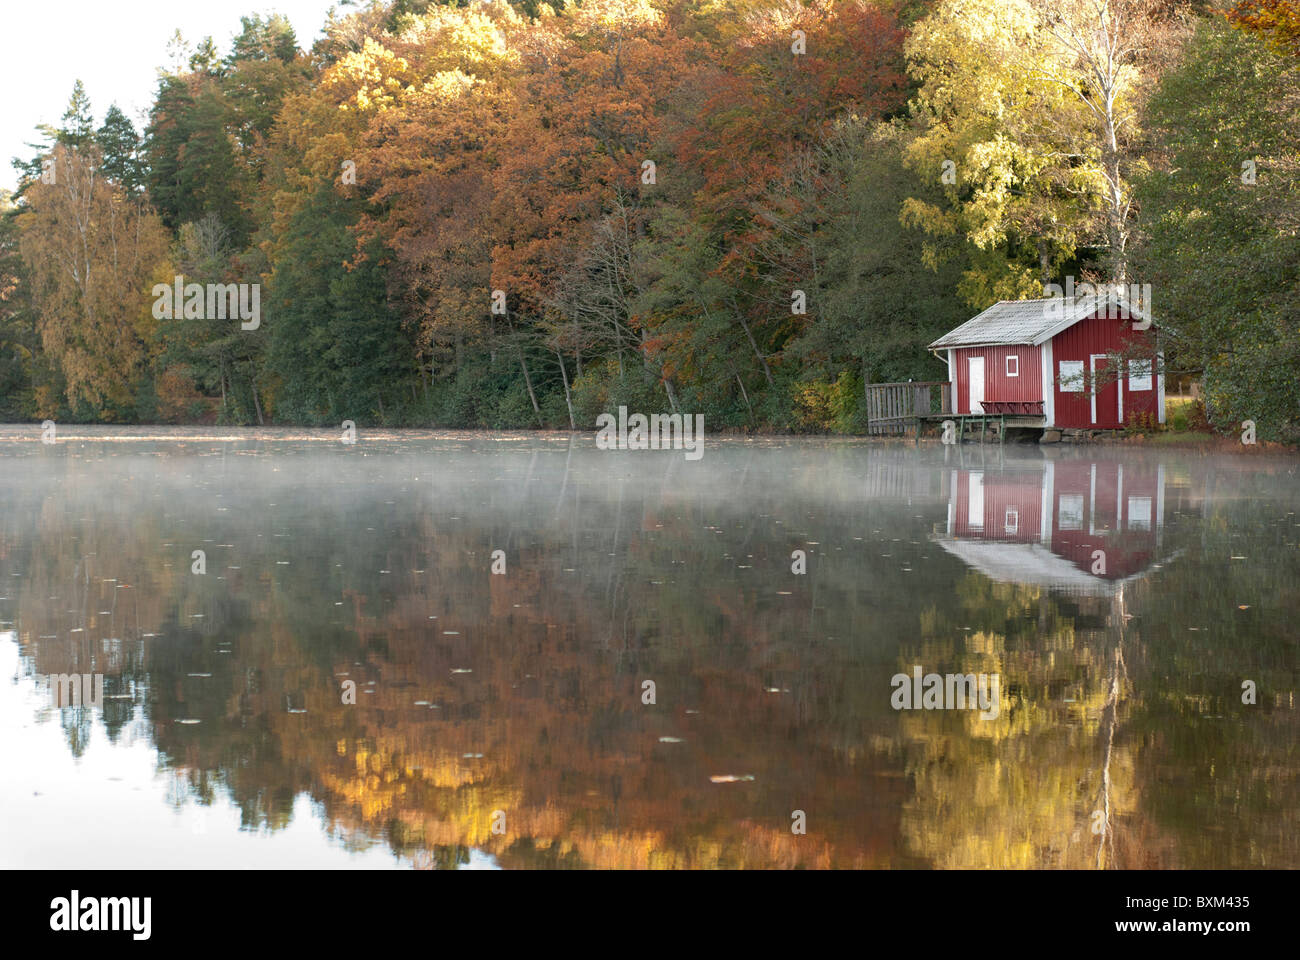 Seahouse sjöbod by lake Sävelången in fall 2010. swedish countryside red house with white stripes. - Stock Image